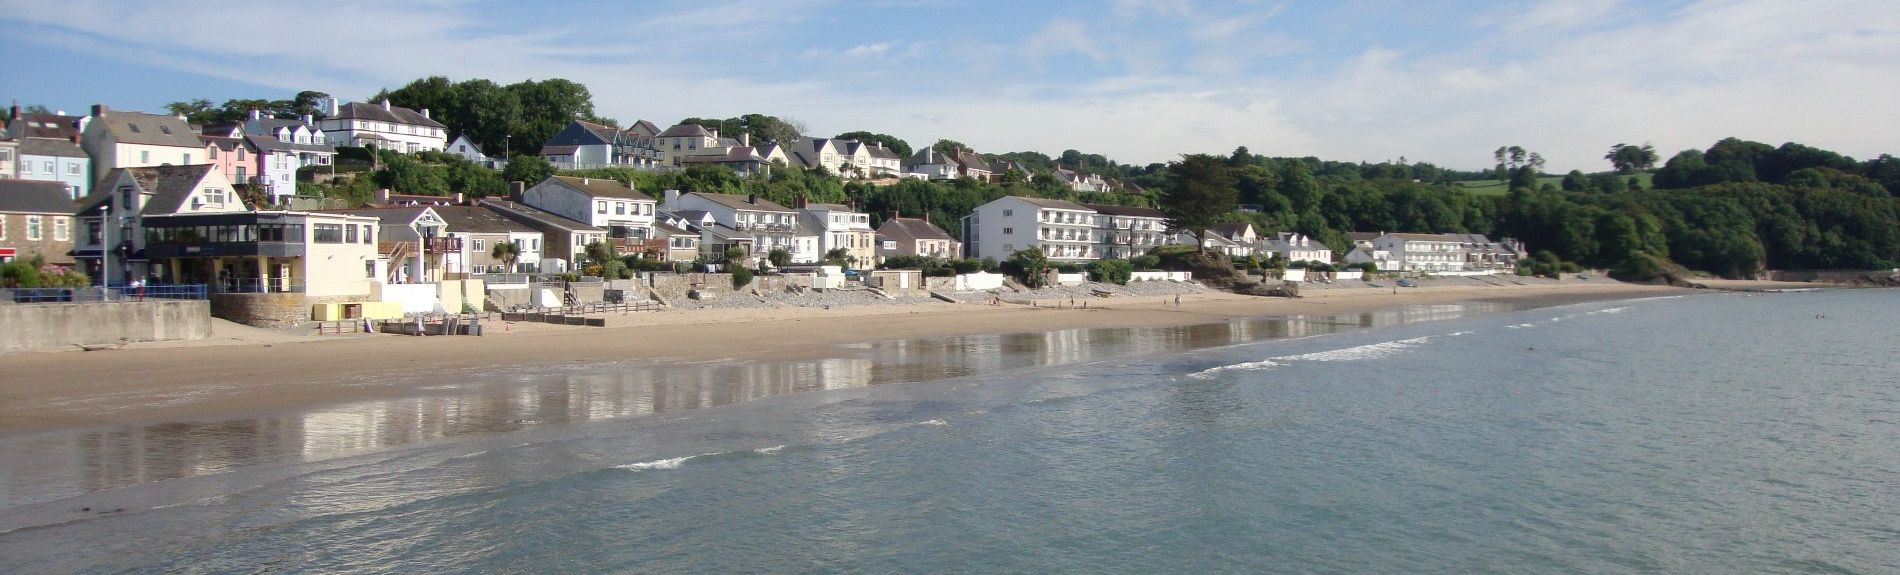 Amroth, Narberth, Pays de Galles, Royaume-Uni